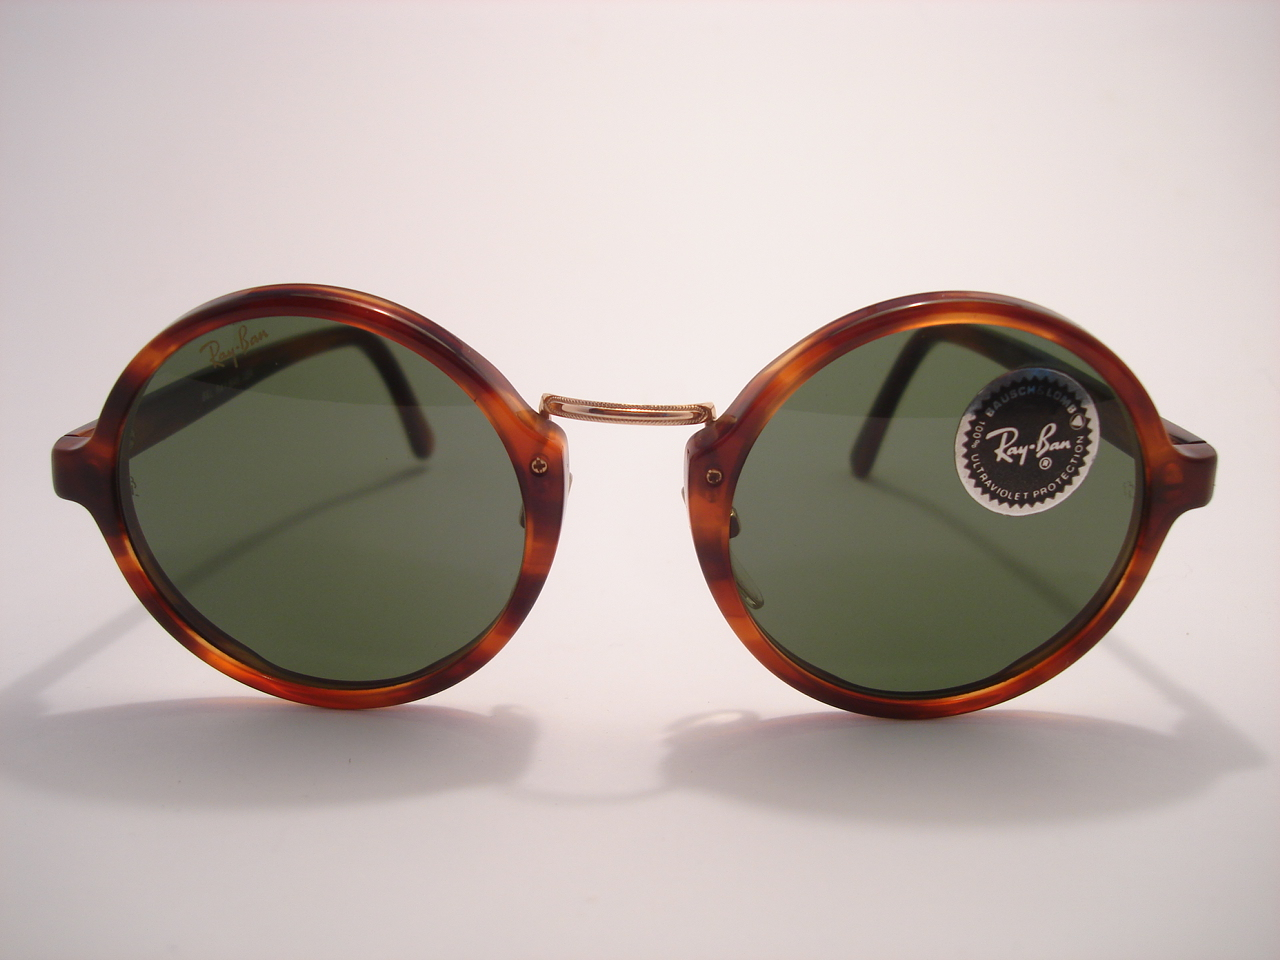 aa8de74c25 Ray Ban Sunglasses Usa - Hibernian Coins and Notes